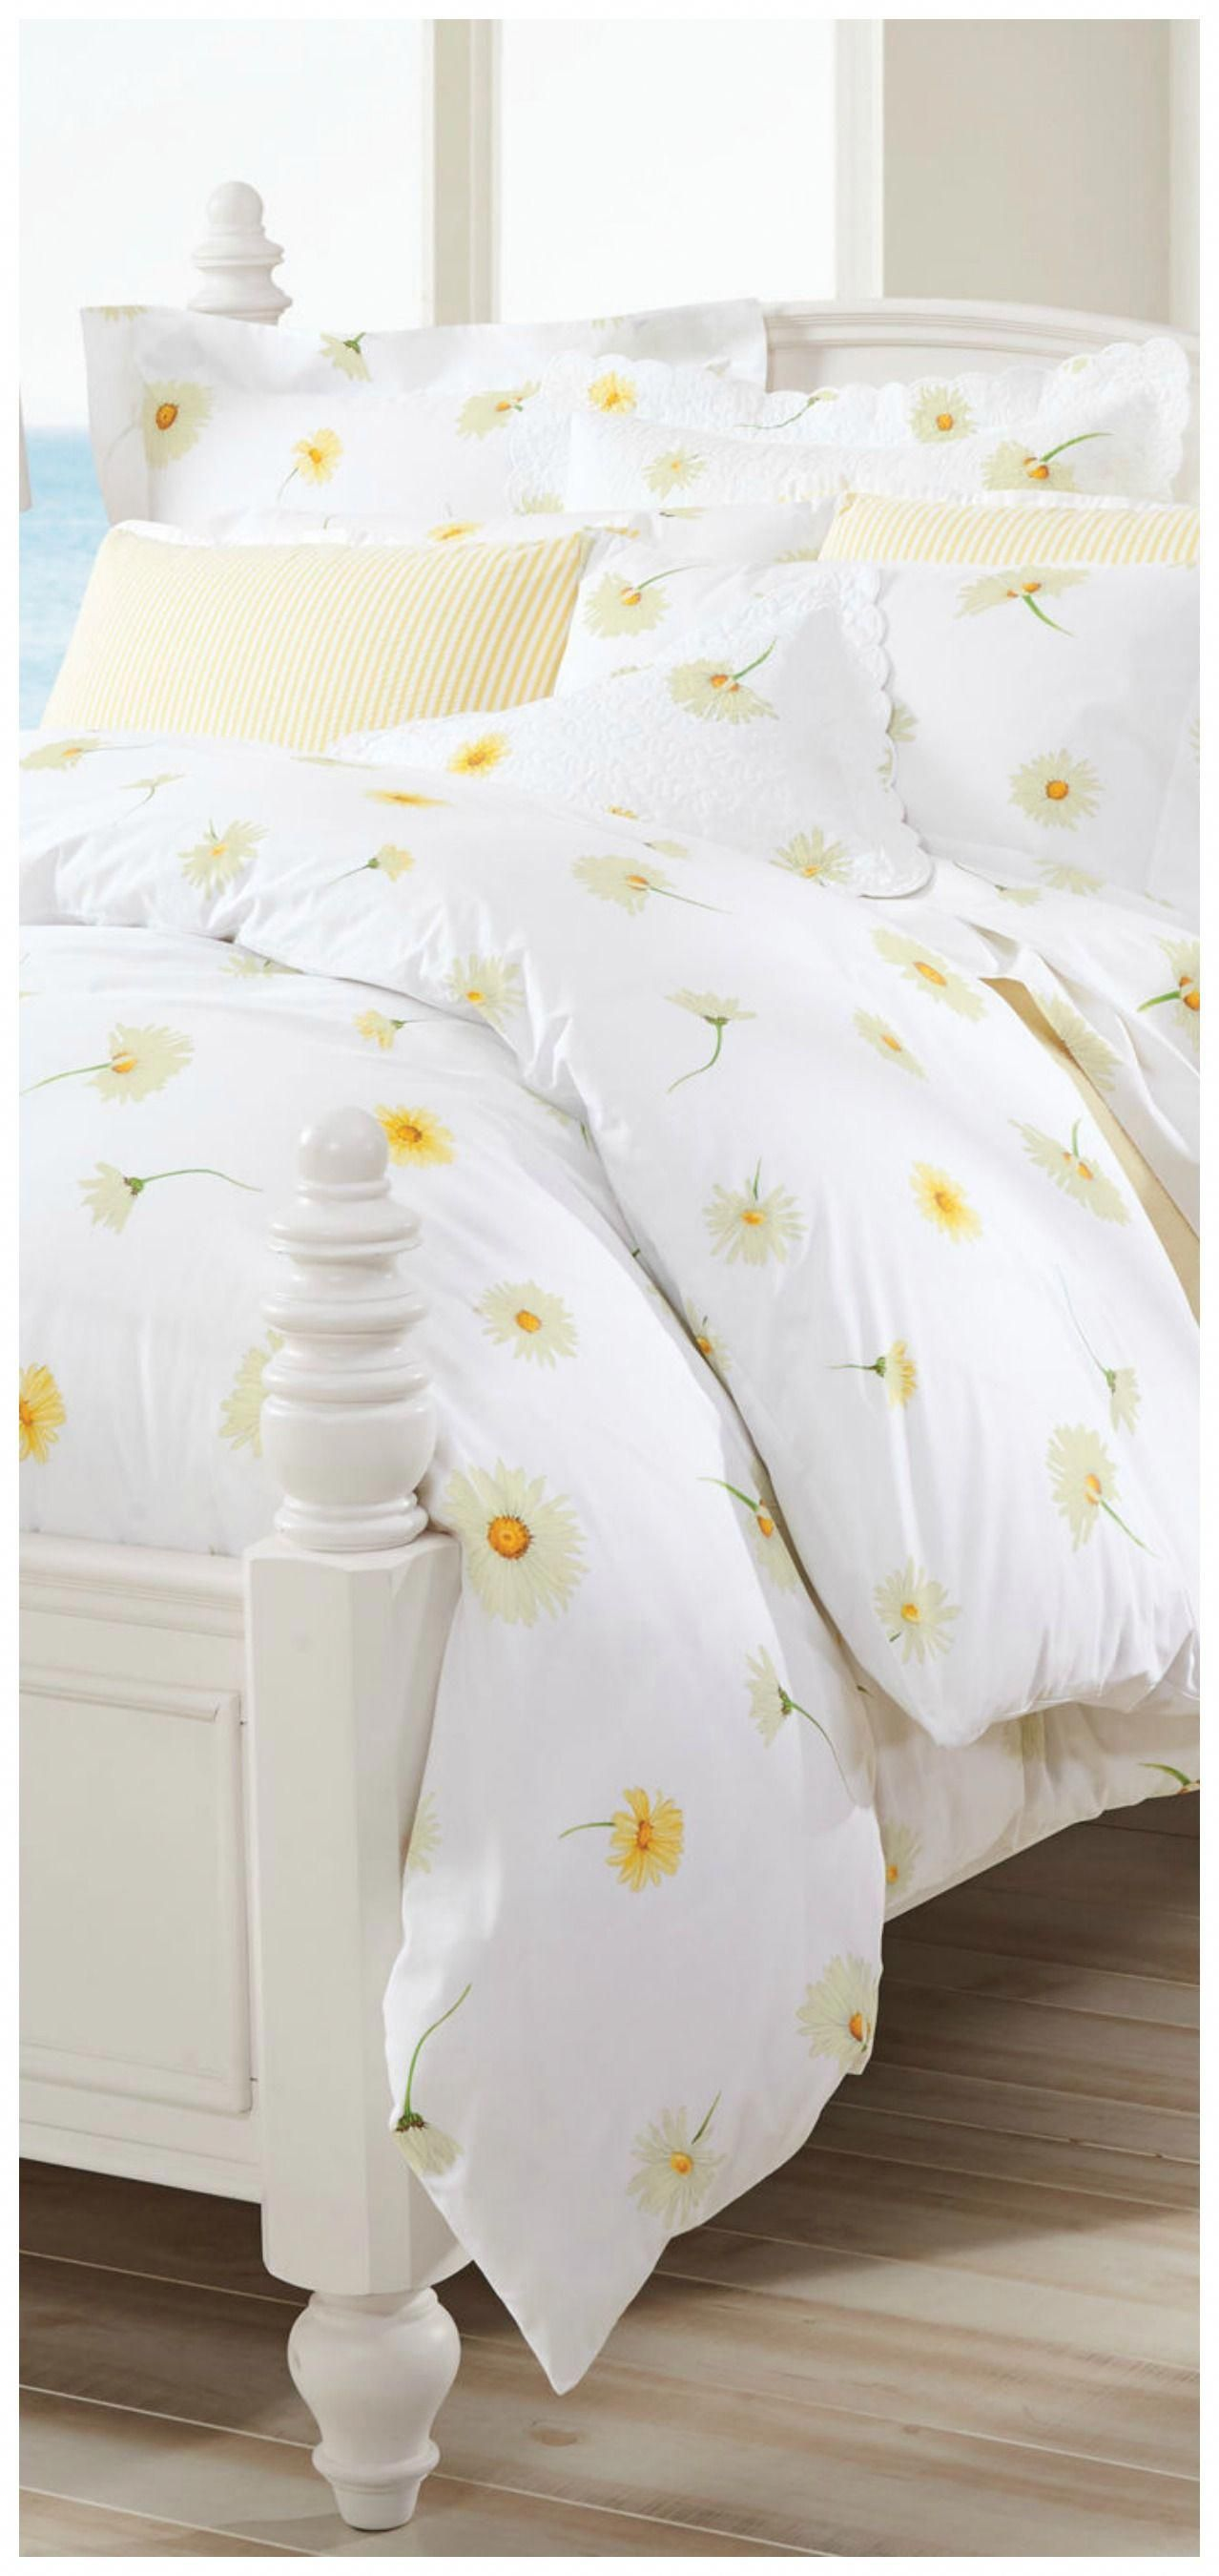 Id 4982362152 Coolbeddingsets With Images Yellow Bedding Bed Linens Luxury Simple Bed